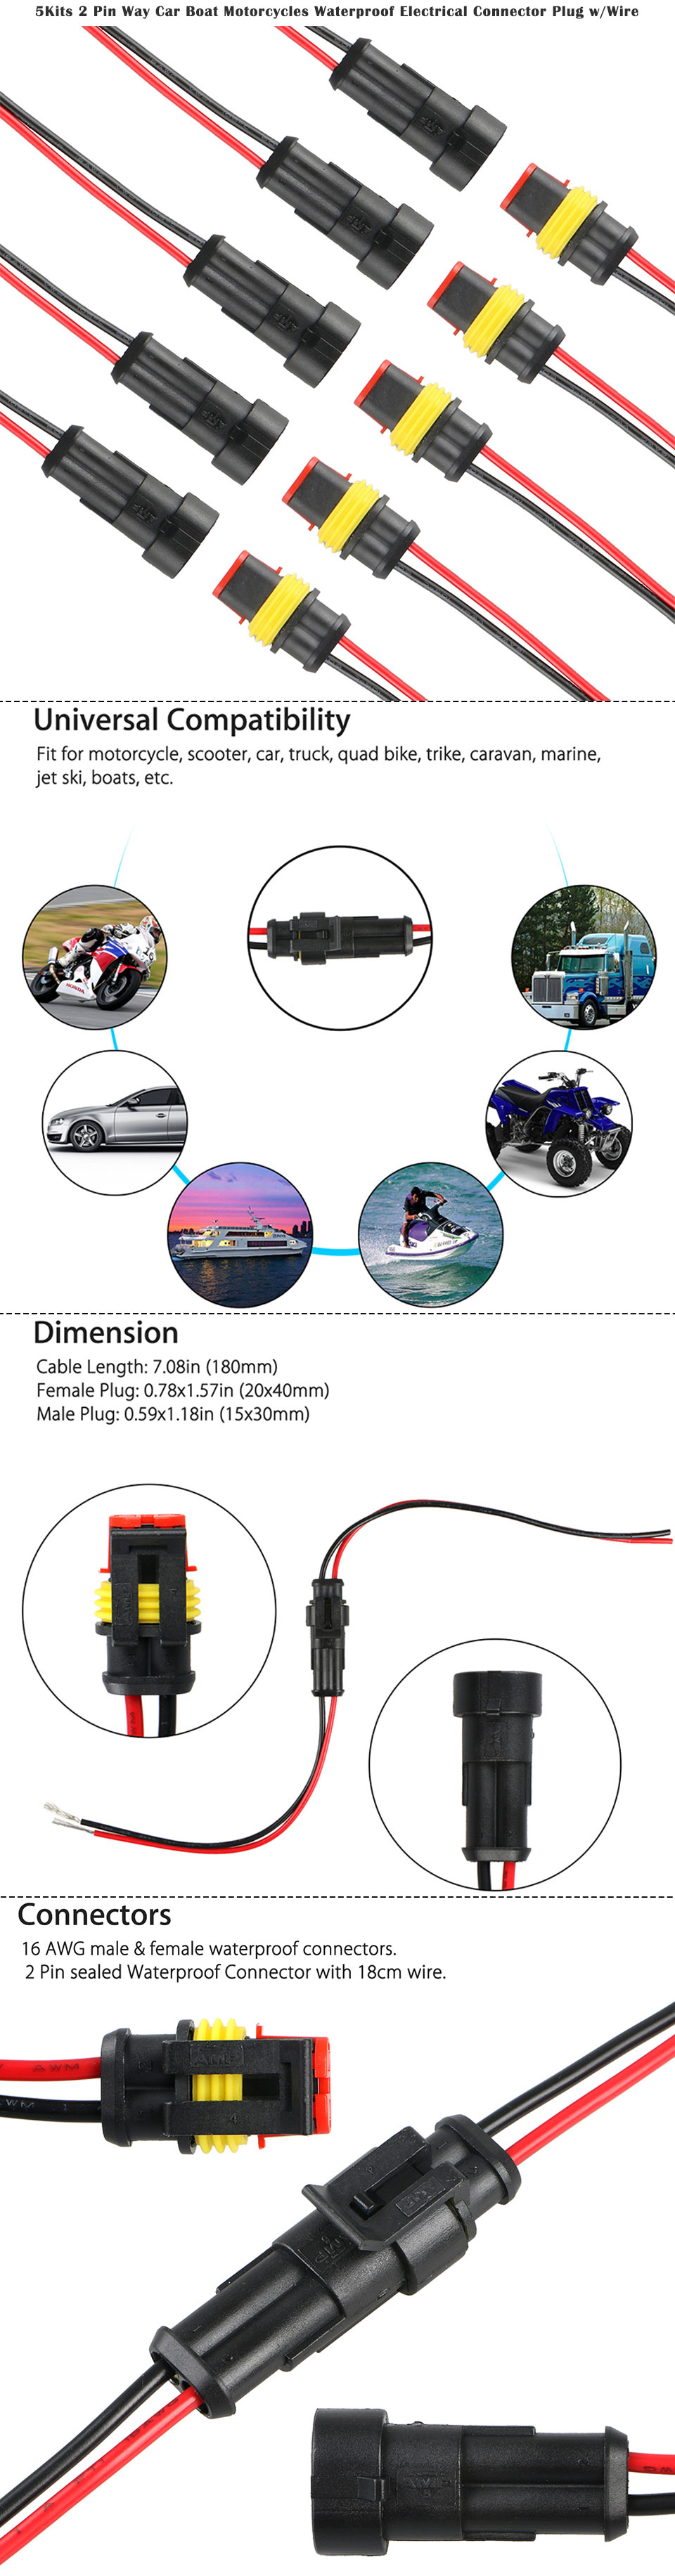 5kits 2 Pin Way Car Boat Motorcycles Waterproof Electrical Connector Motorcycle Wiring Connectors Plug Wire Awg Marine Applicable In Scooter Truck Quad Bike Trike Caravan